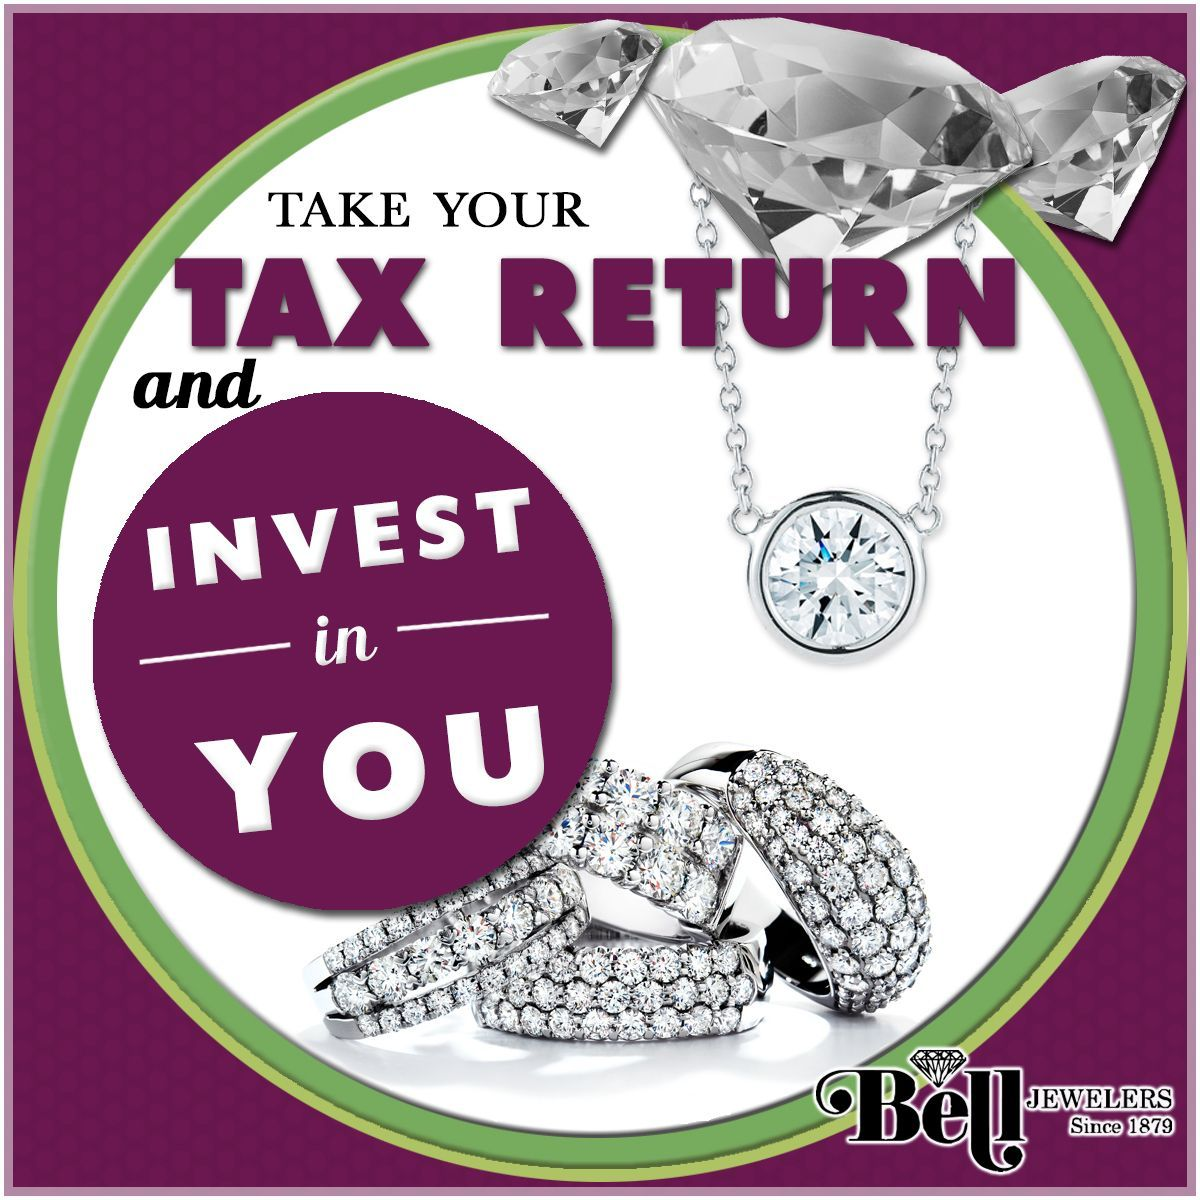 Invest in something spectacular, you deserve it!